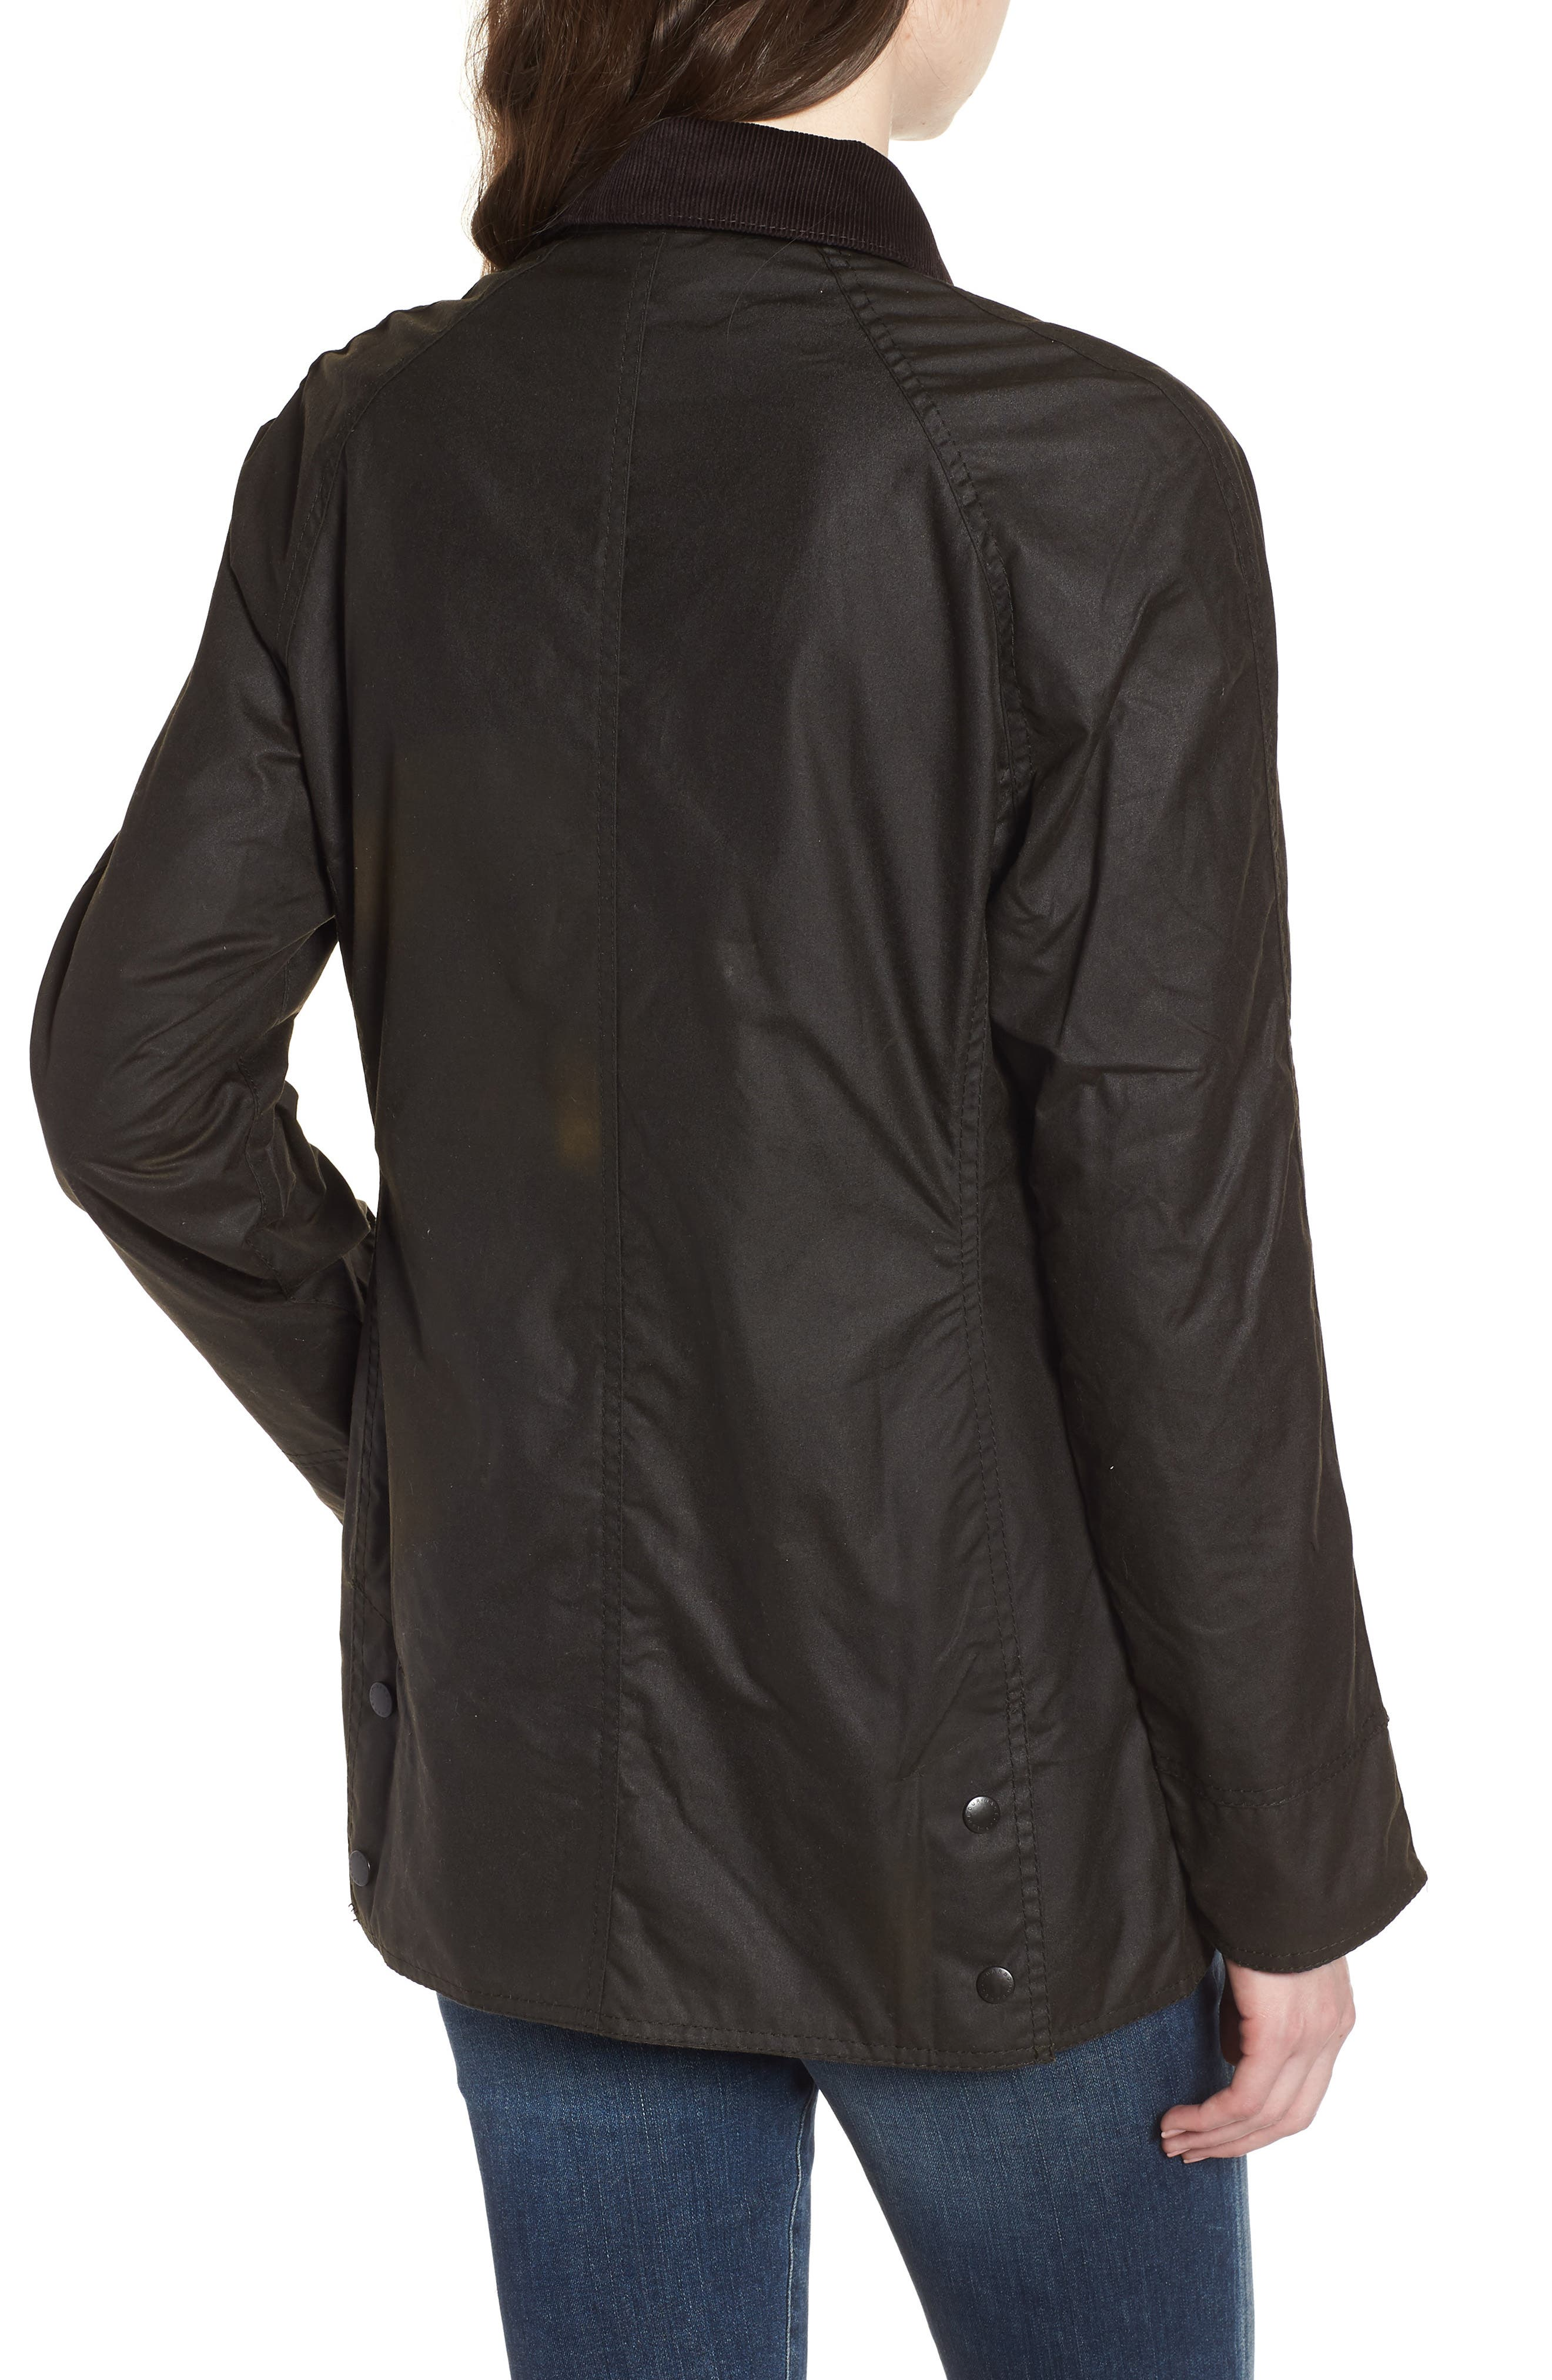 BARBOUR, Beadnell Waxed Cotton Jacket, Alternate thumbnail 2, color, 300